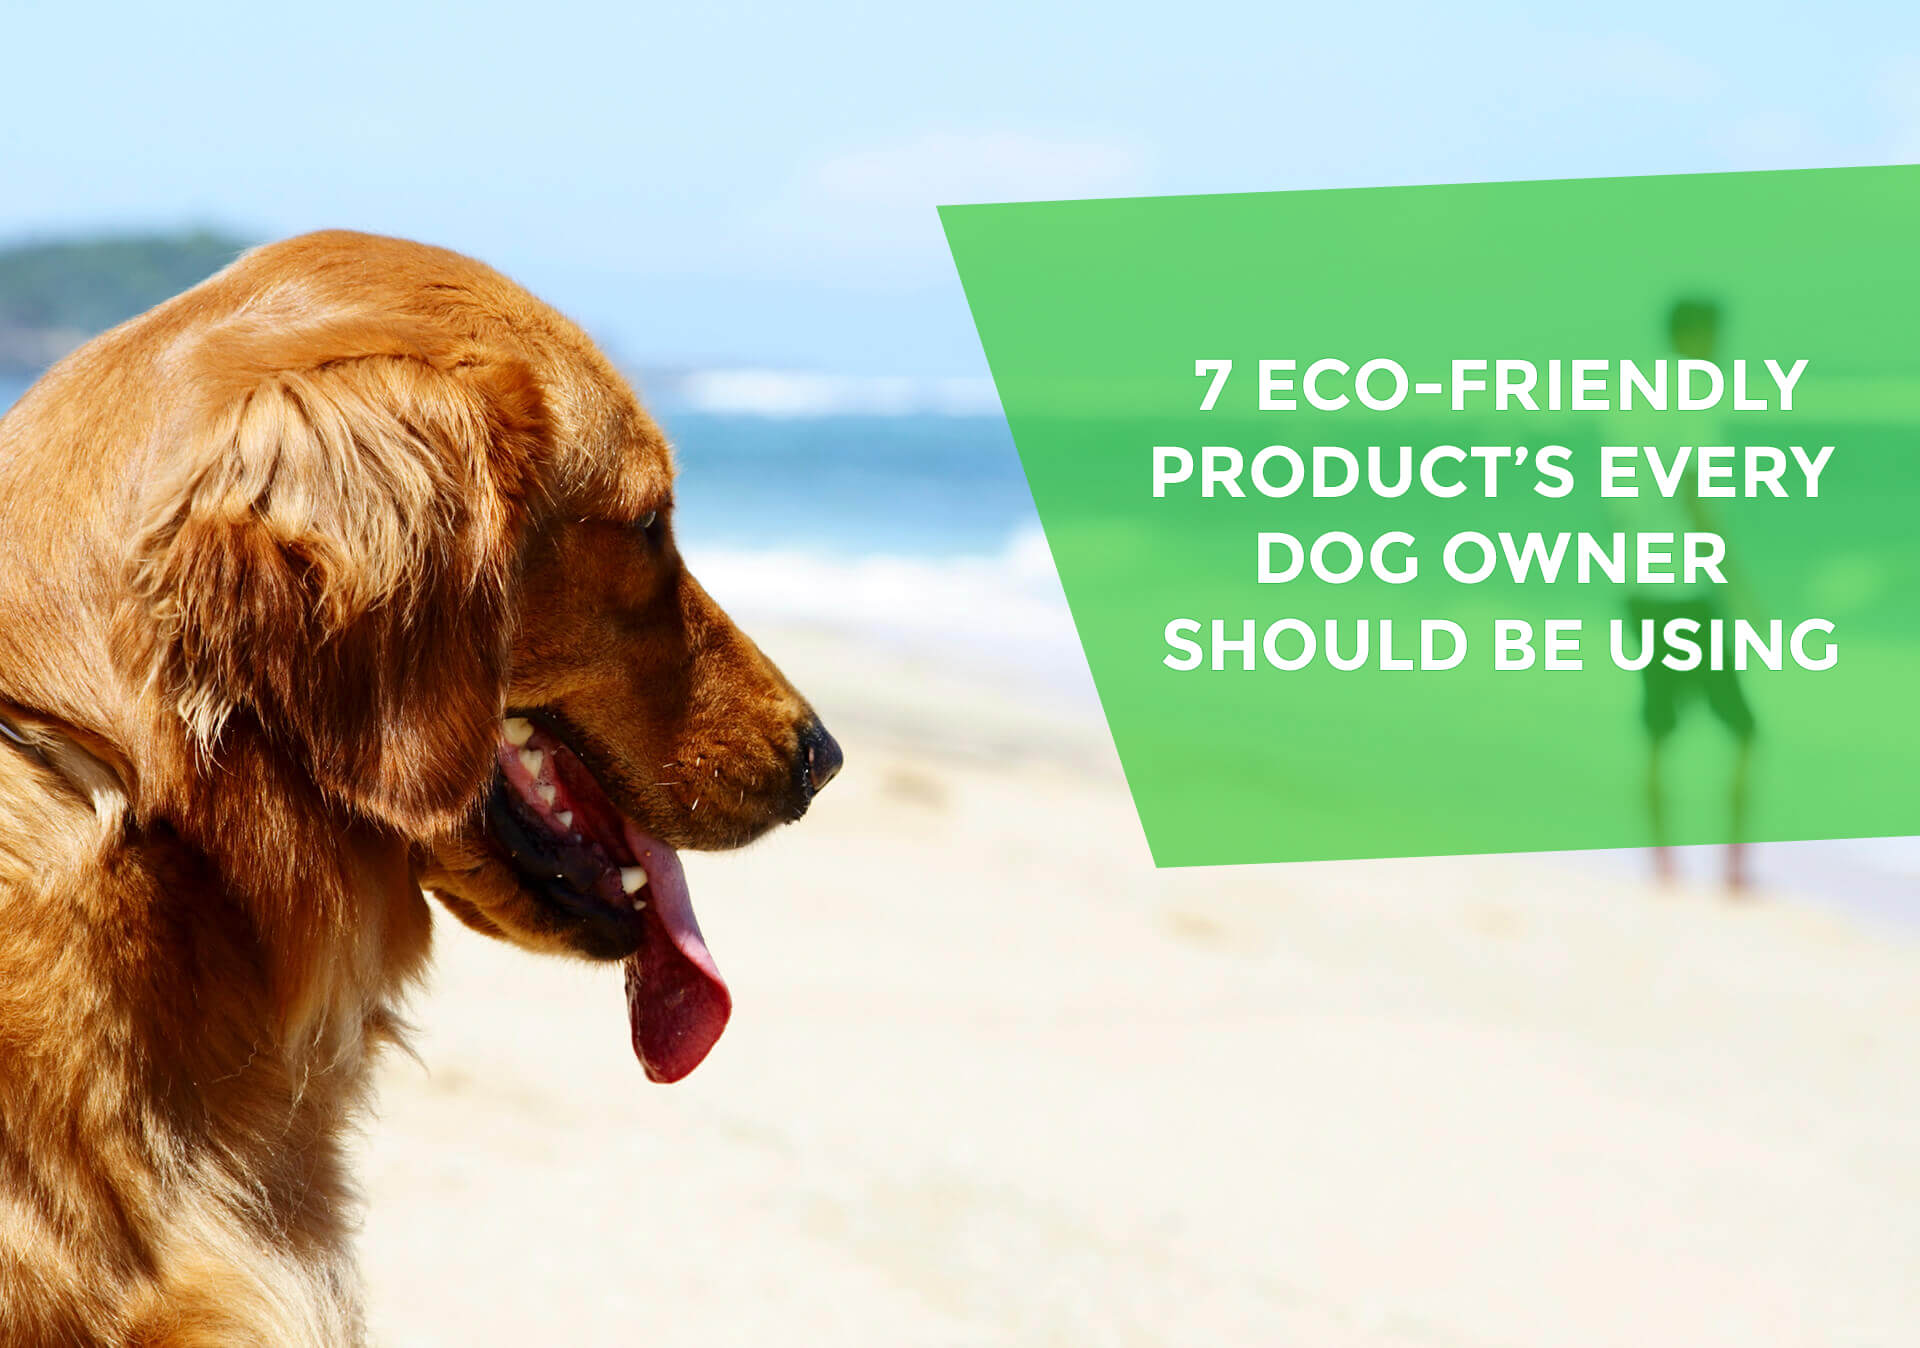 7 Eco-Friendly Pet Products